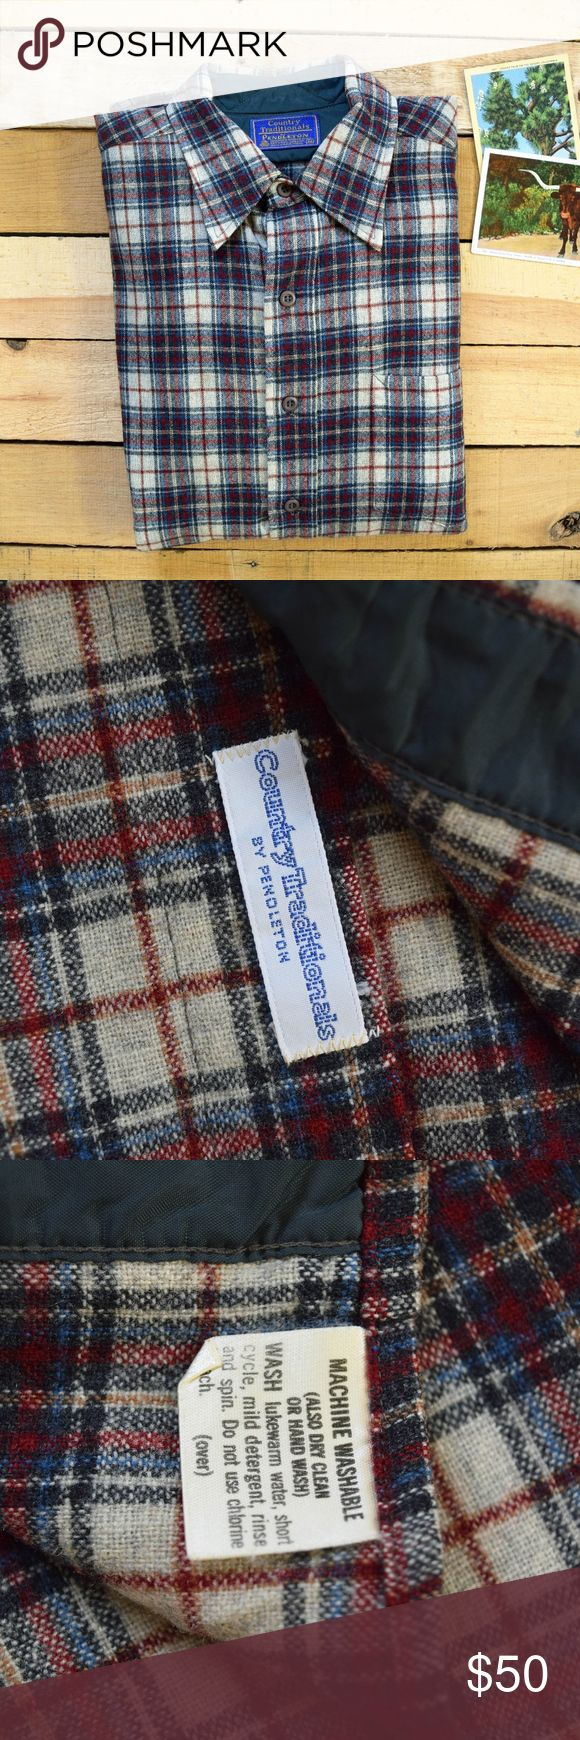 """Vintage PENDLETON M Men's Wool Fireside Shirt 80s """"Country Traditionals"""" Pendleton Wool Fireside shirt in a men's Medium. The plaid is a nice classic combination of light gray, navy blue, dark red, with accents of light blue and light brown. There is a small spot approx .25"""" by the third button down. It is not very noticeable as the shirt is heavily patterned.   Shoulder seam to Shoulder seam- 18"""" Chest- 21"""" across Waist- 20"""" across Sleeve Length from shoulder seam- 22.5"""" Total length- 30.5""""…"""